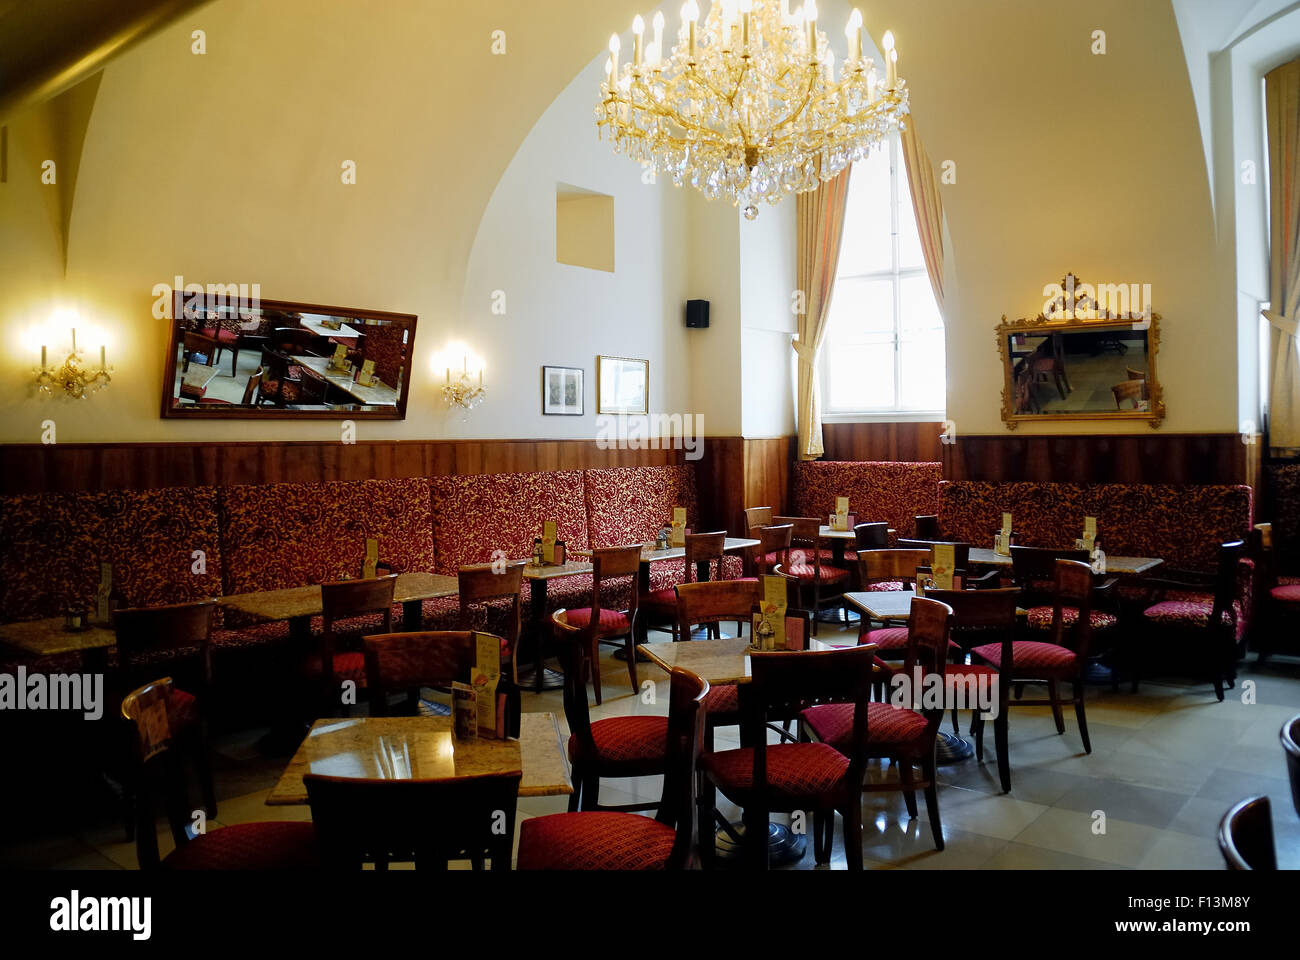 Vienna,the tourists coffee house inside the Hofburg Palace. The Hofburg Palace is the former imperial palace in - Stock Image